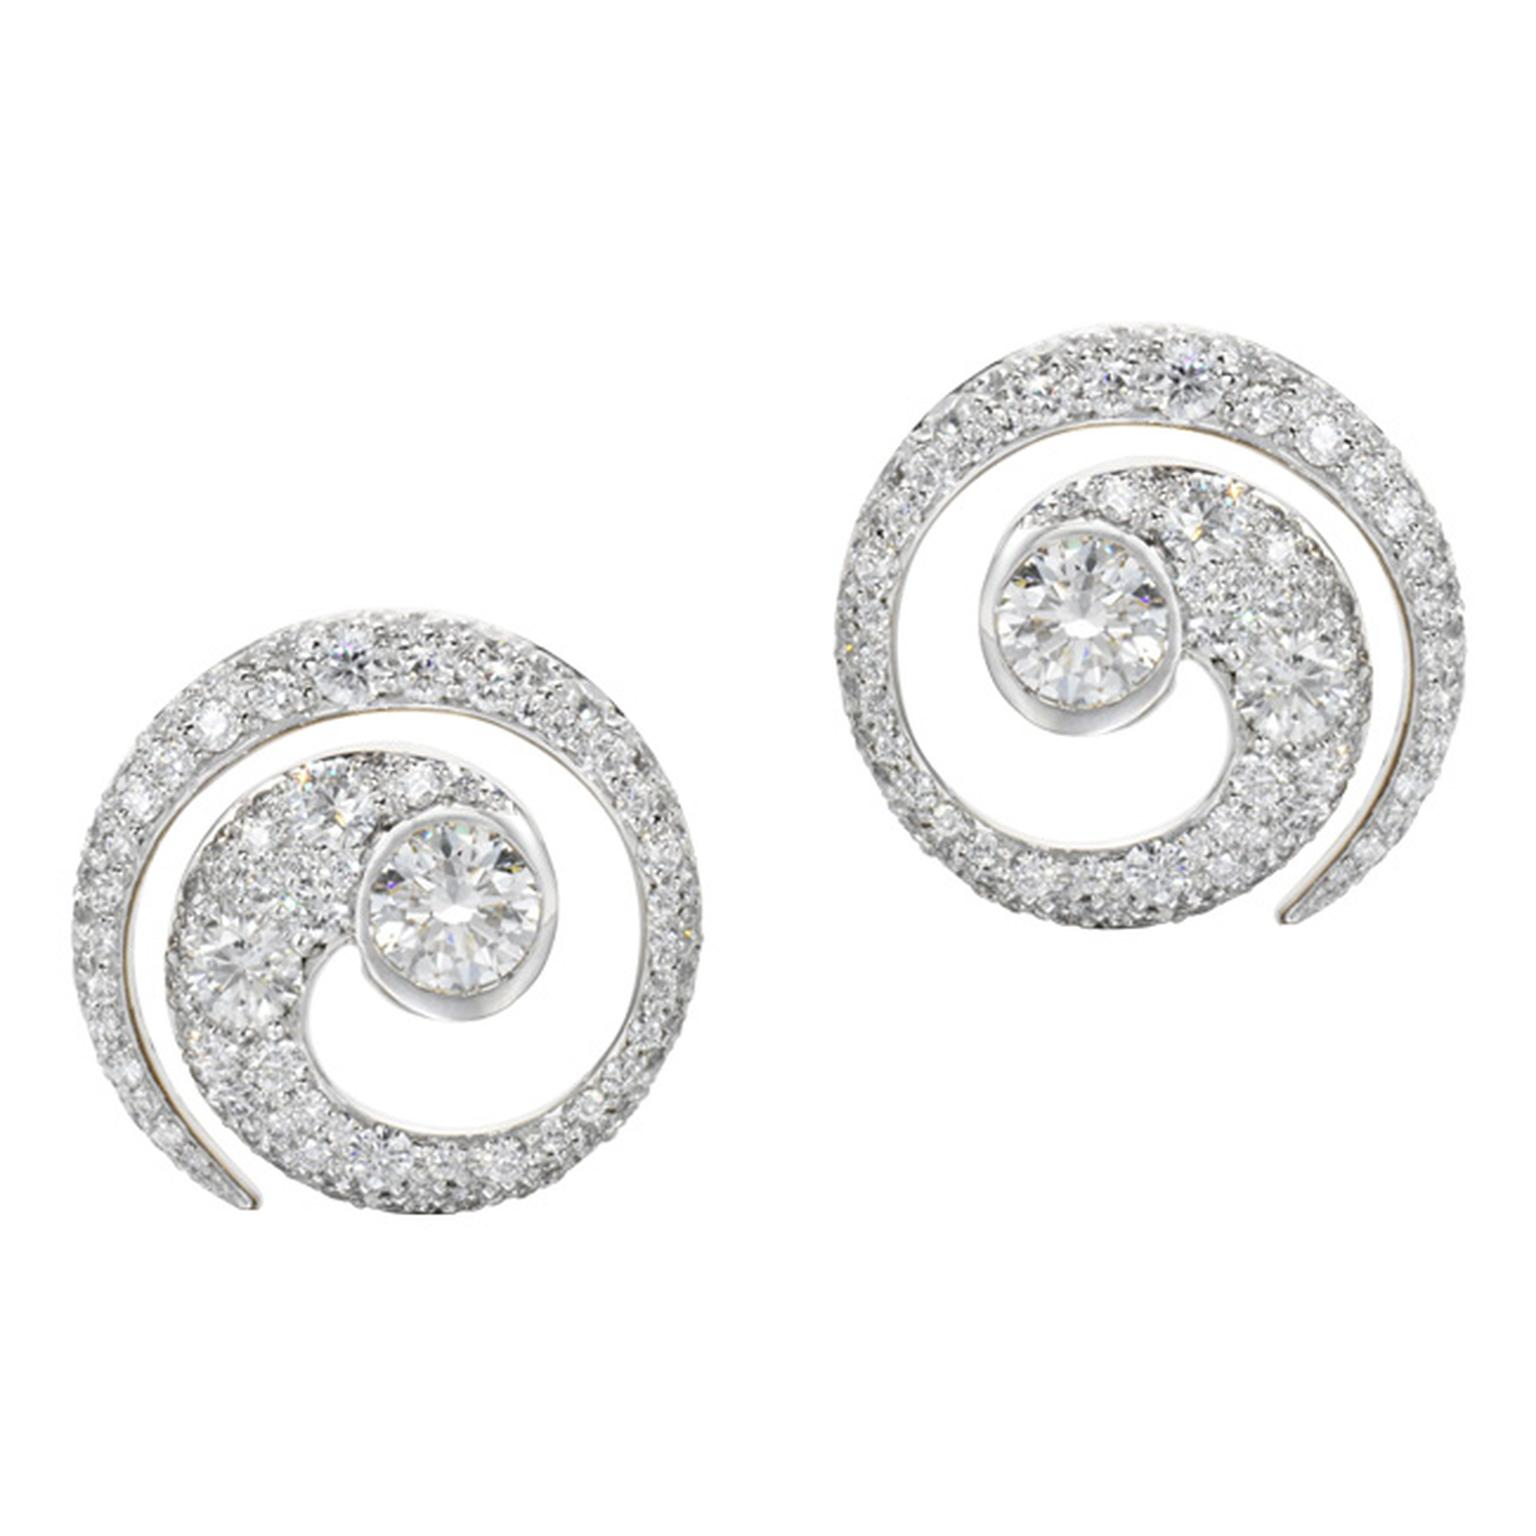 Jessica McCormack Mini Tattoo diamond earrings are inspired by Maori tattoos. At its core is a large, single, round brilliant diamond that leads into a beguiling diamond pavé spiral pattern with a total diamond weight of over 3ct.